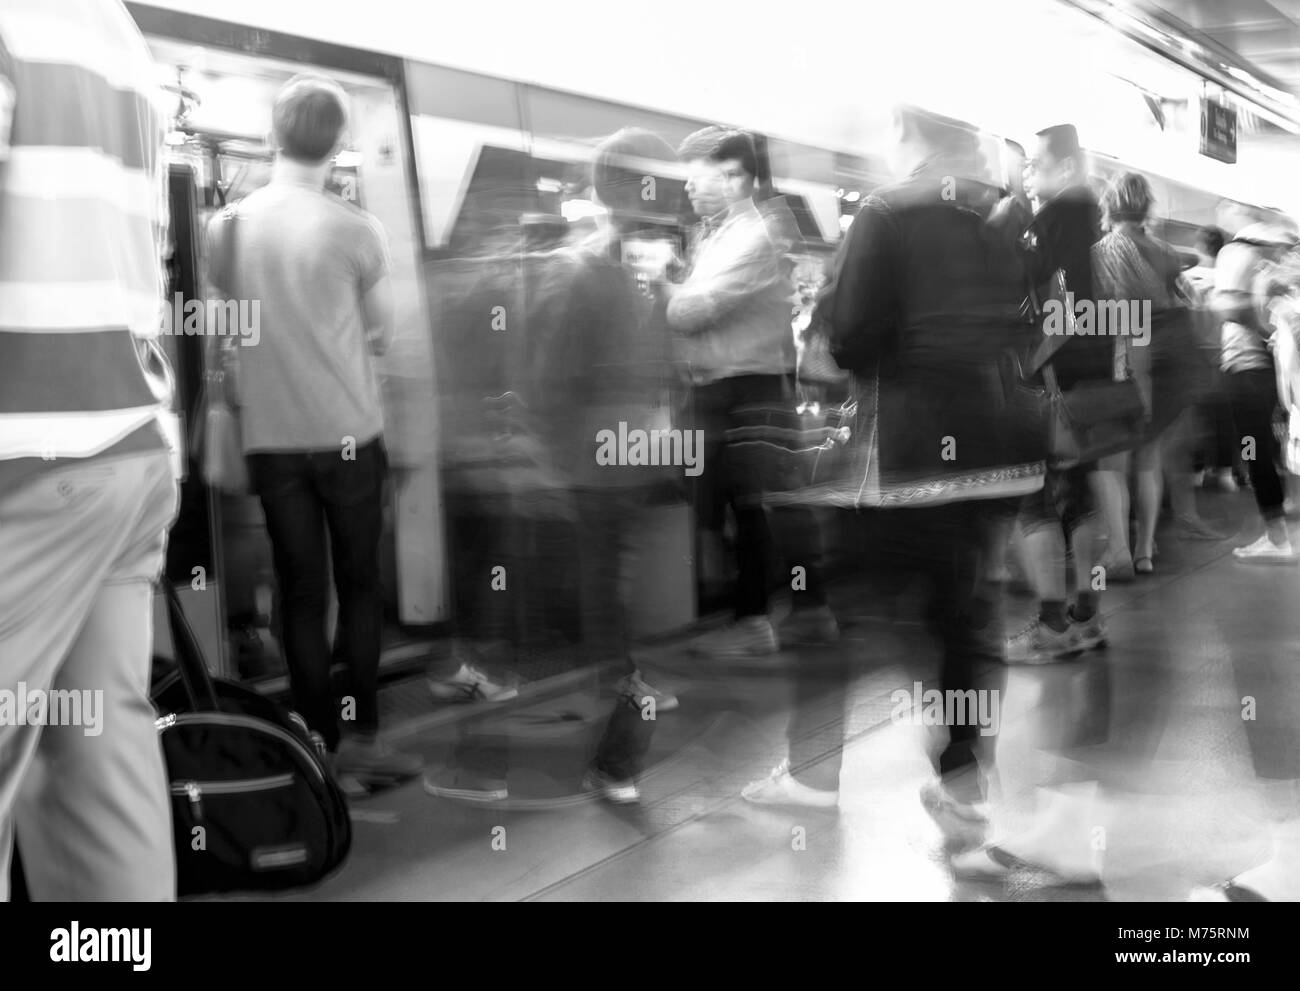 Motion blur people walking in and out the train in train station - Stock Image